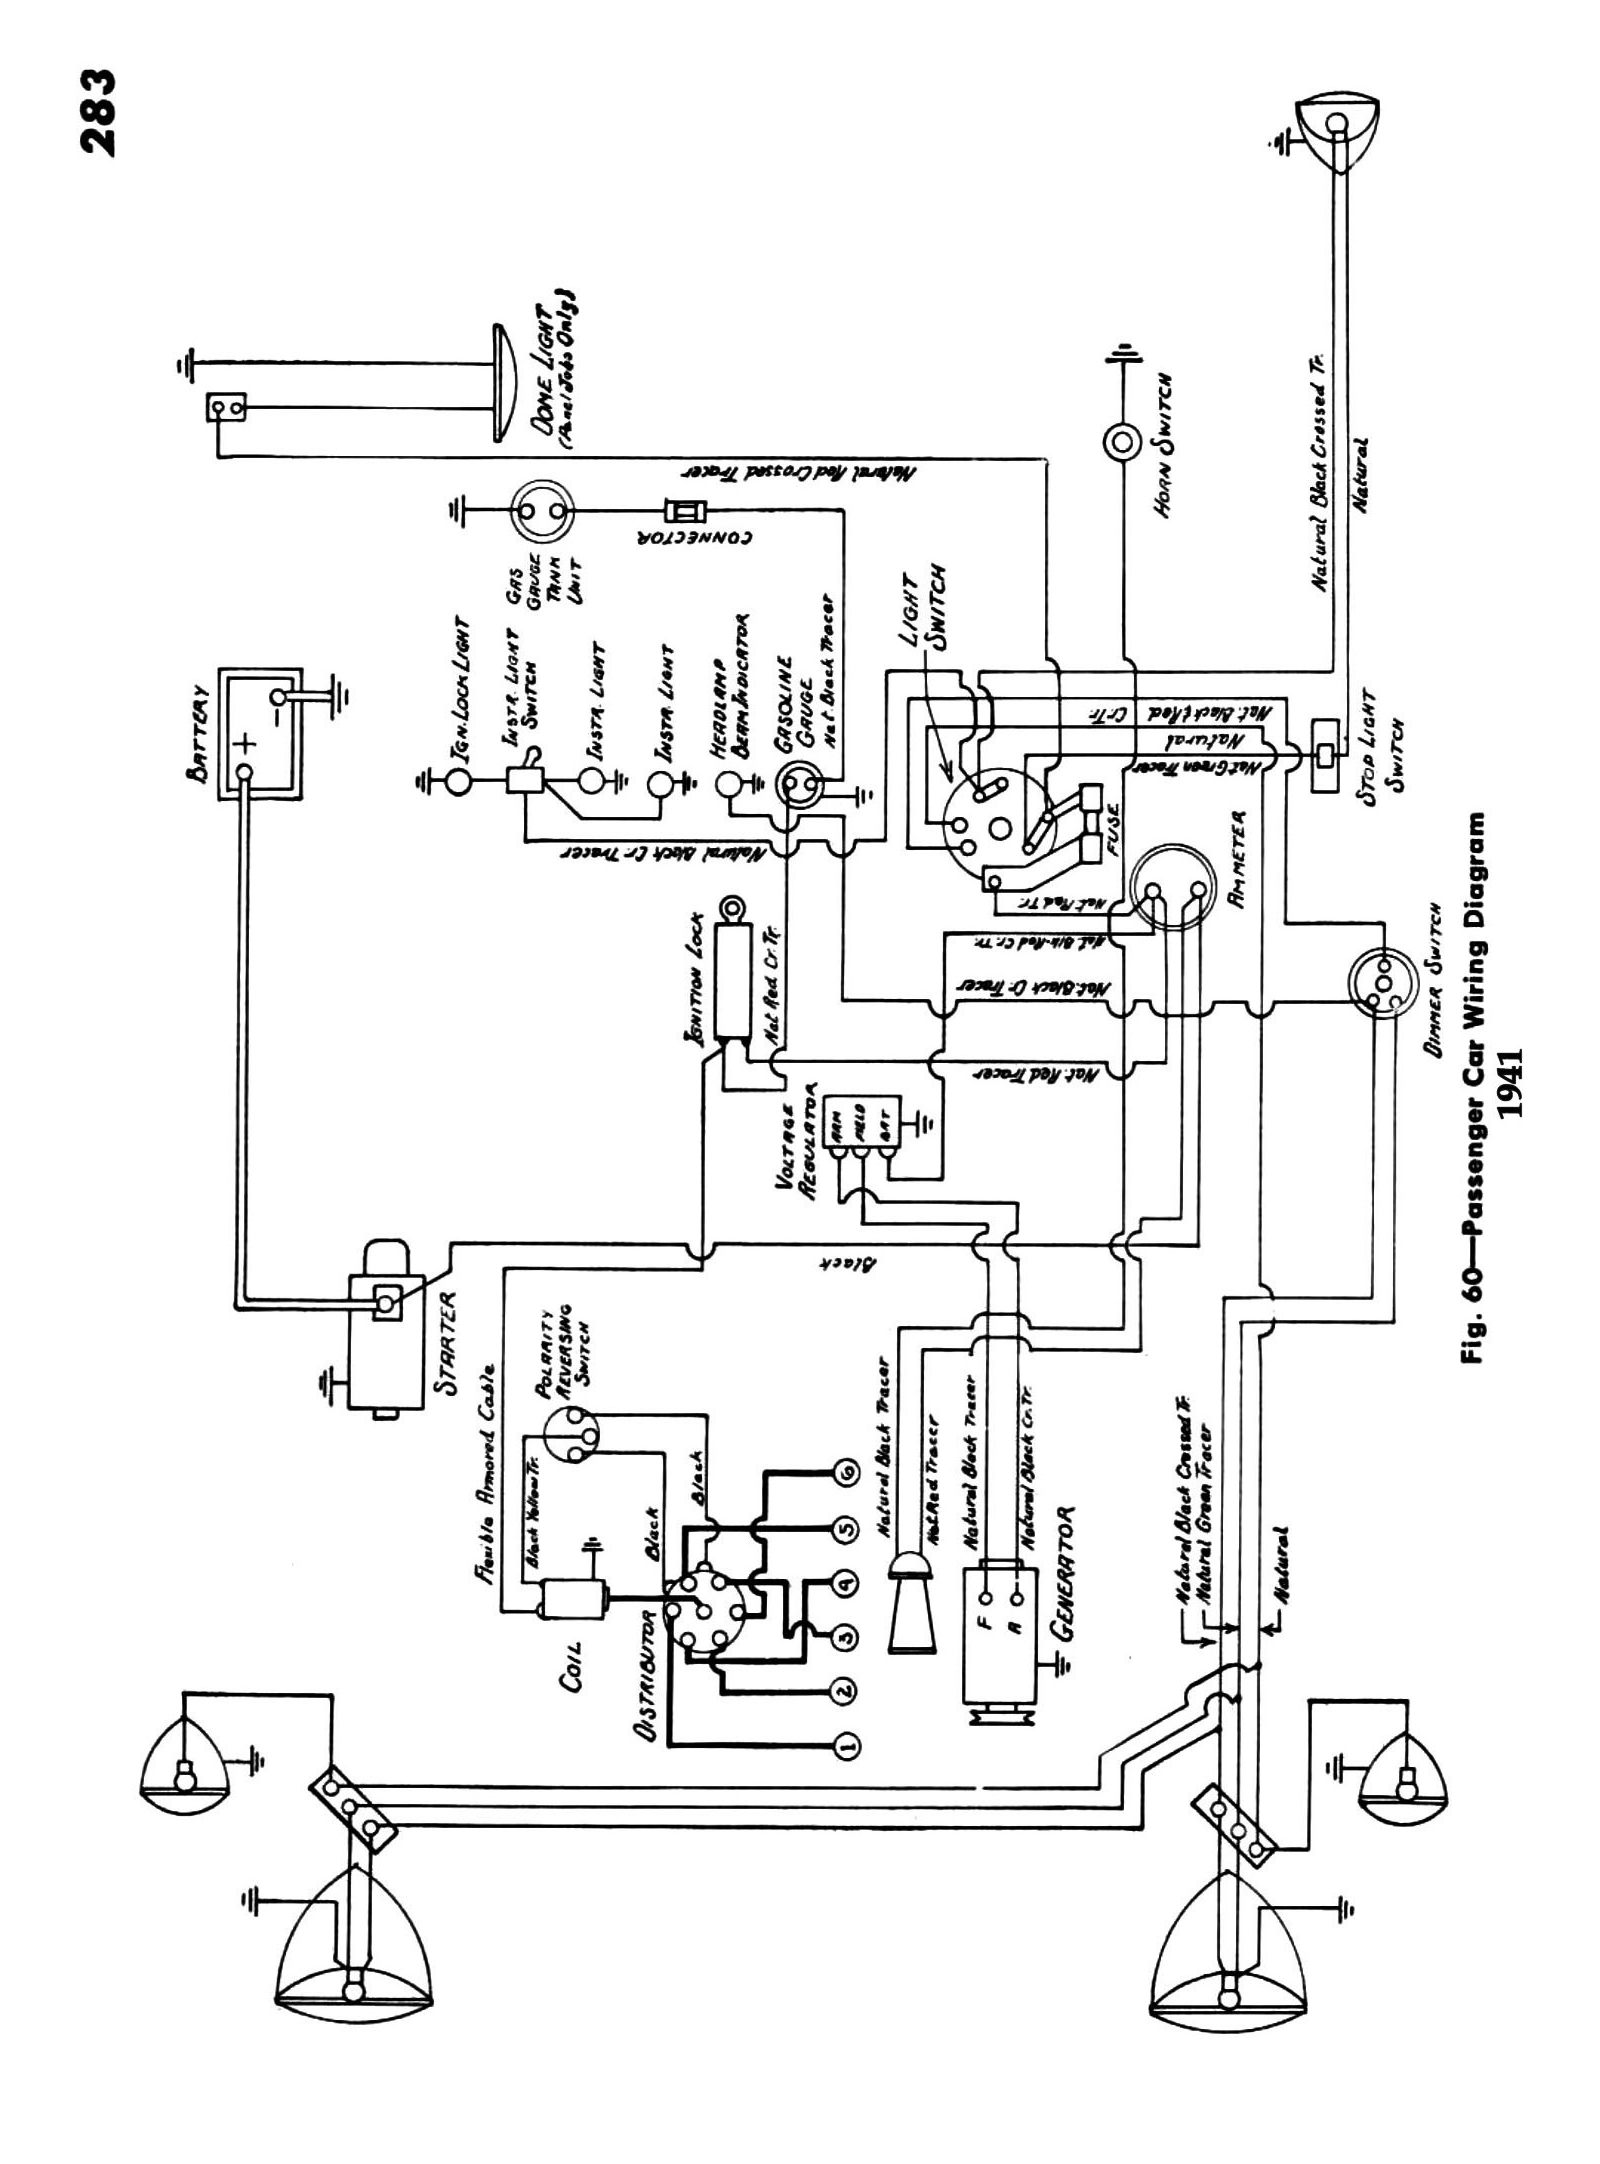 41csm283 58 chevy truck wiring diagram wiring schematic diagram